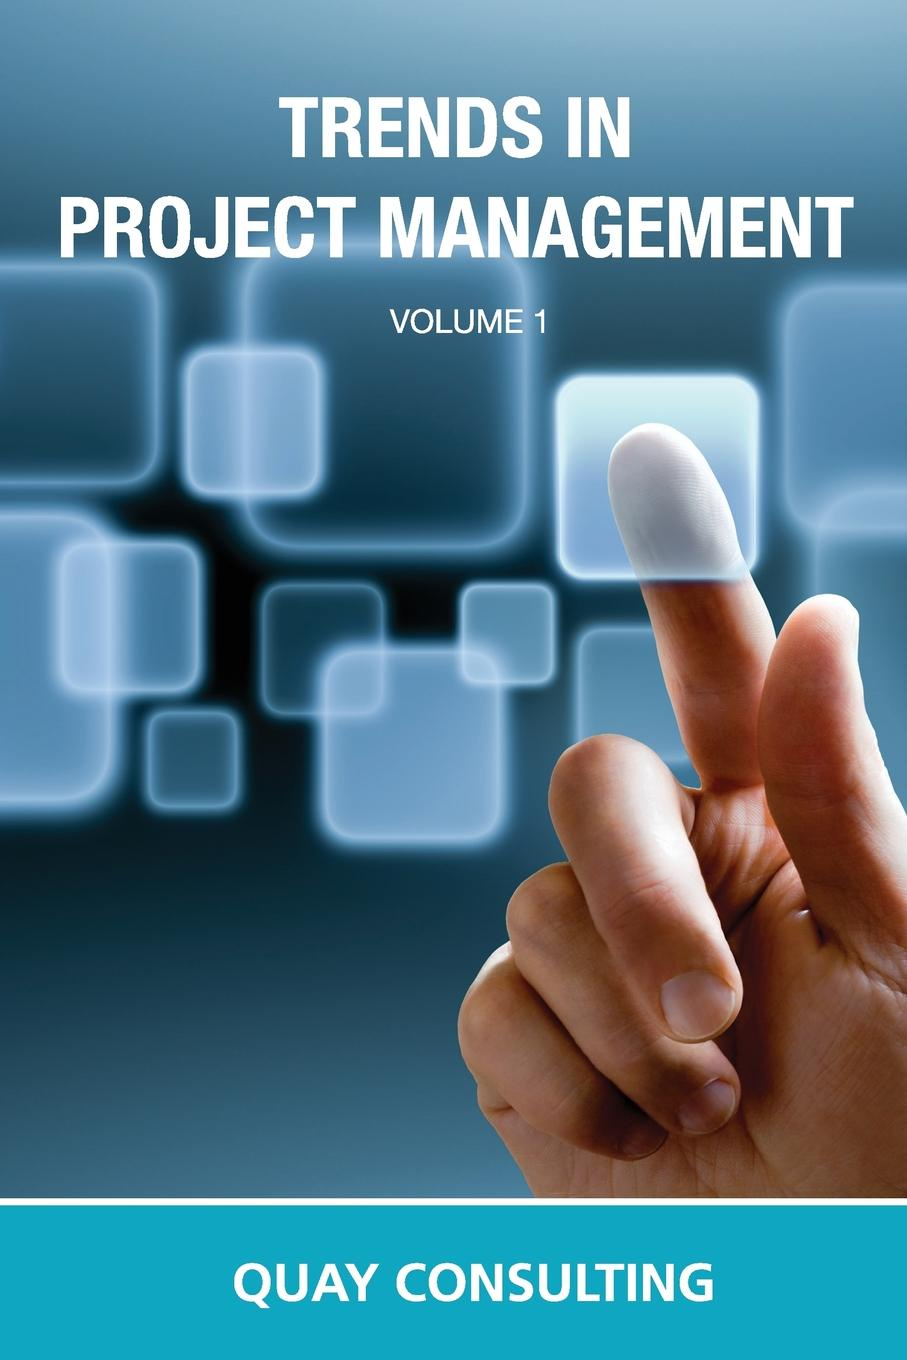 Quay Consulting Trends In Project Management mohamed msoroka project design and management knowledge and project management skills